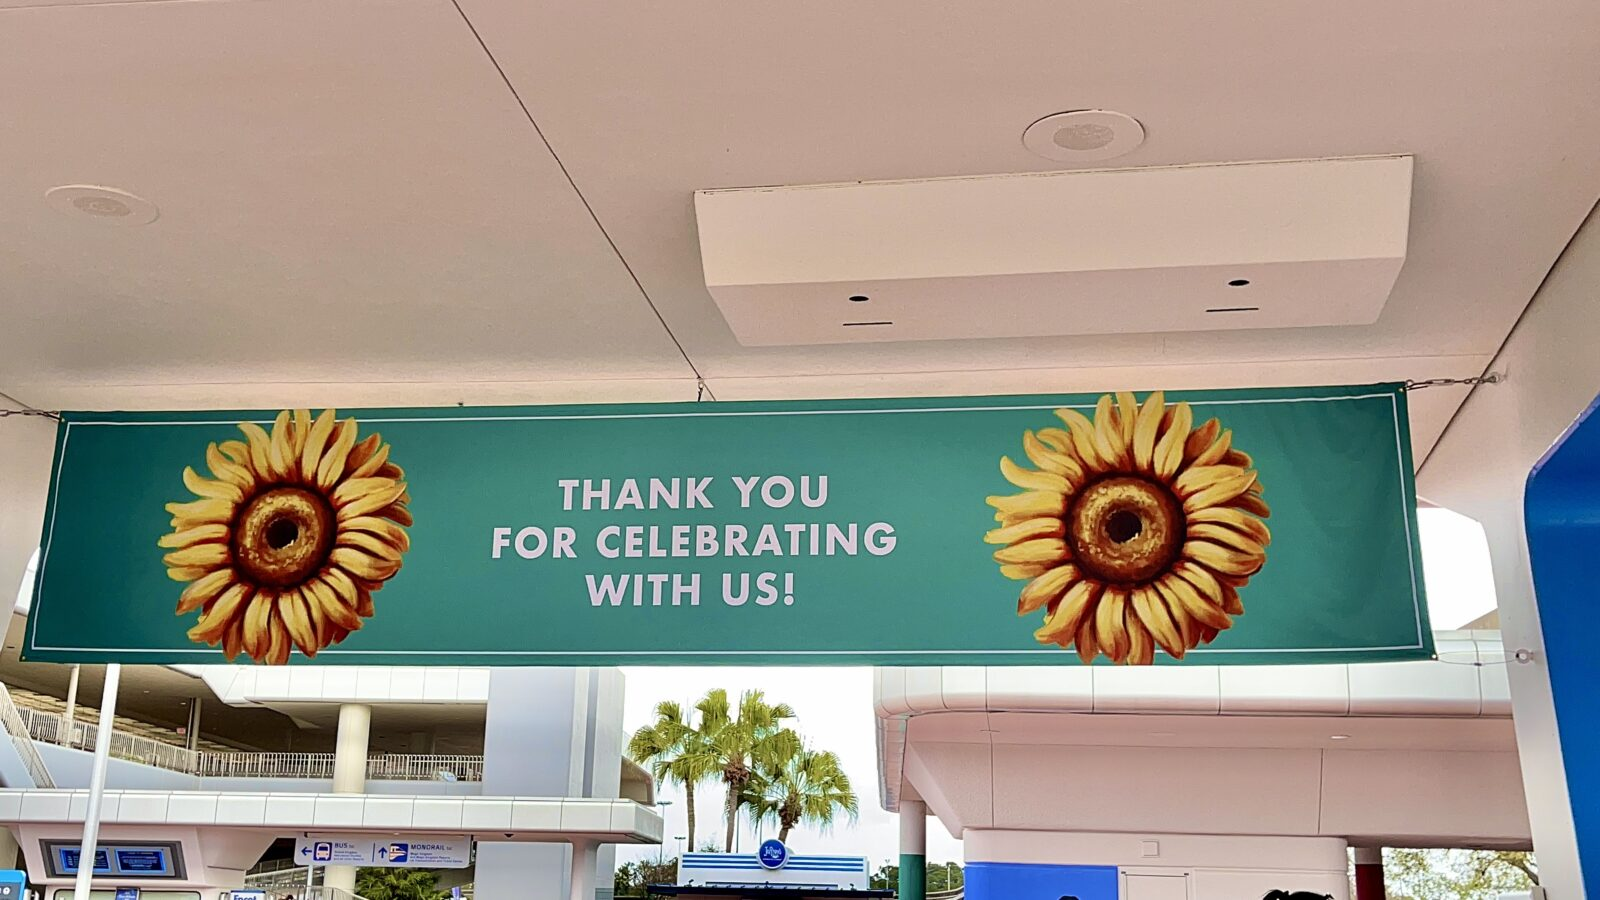 2021 Epcot Flower and Garden Festival Thank you banner